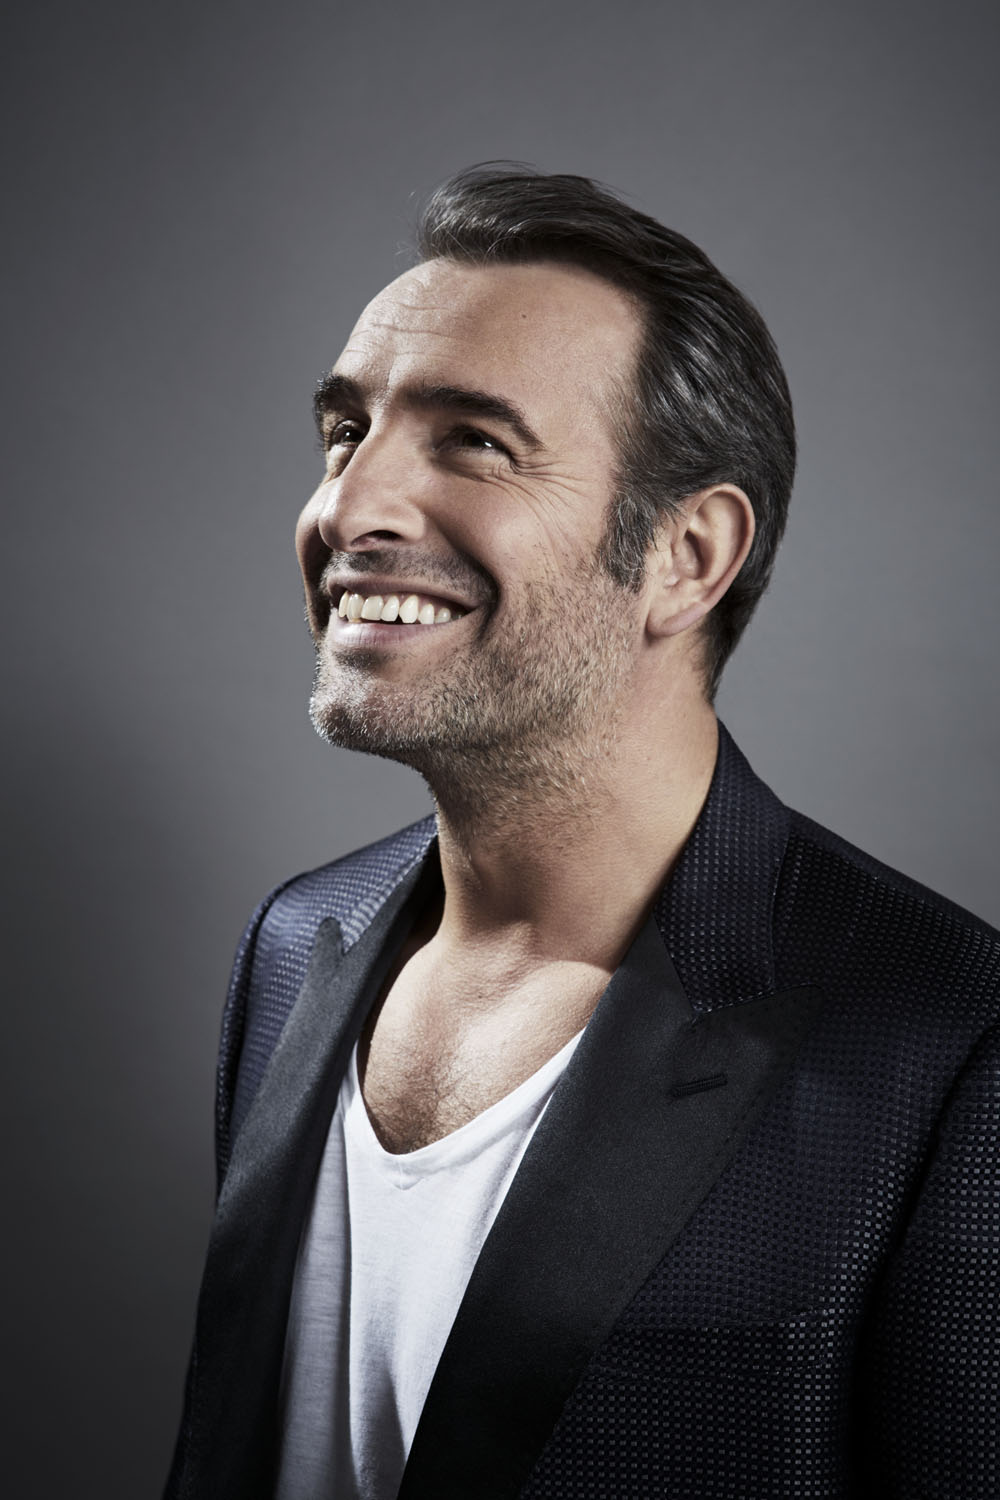 Jean dujardin depuis un gars une fille la carri re de for Jean dujardin photo